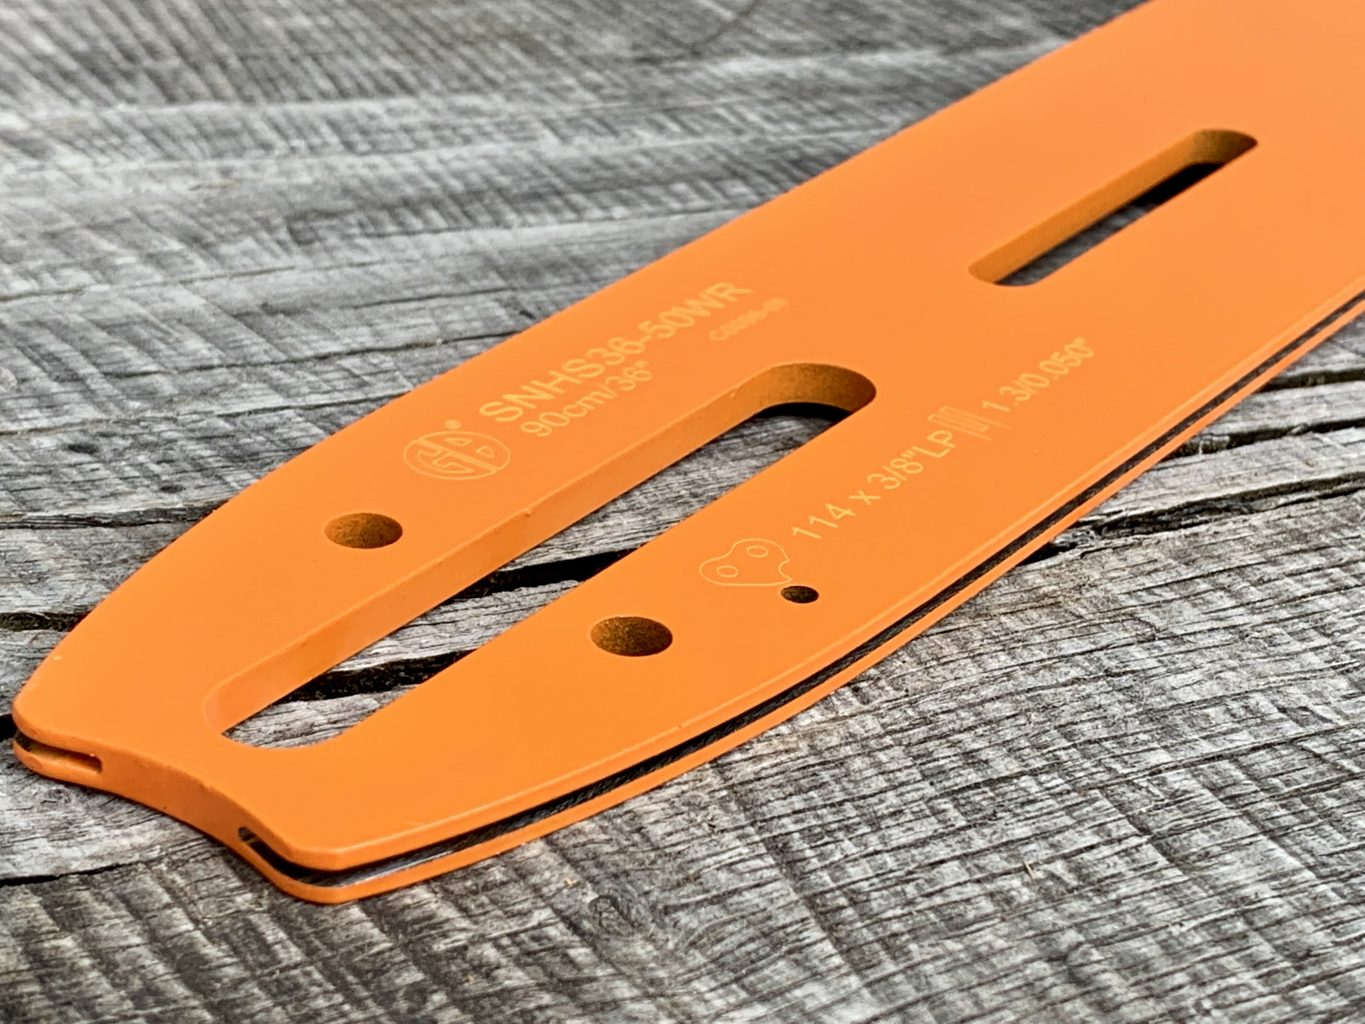 "SNHS30-50WR 30""[76cm] GB Slotted Lo Pro Milling Bar For Stihl 044, 045, 046, 048, 064, 065, 066, MS440, MS441, MS460, MS461, MS650, MS660, MS661 3/8 Lo Pro .050 98 drive links"